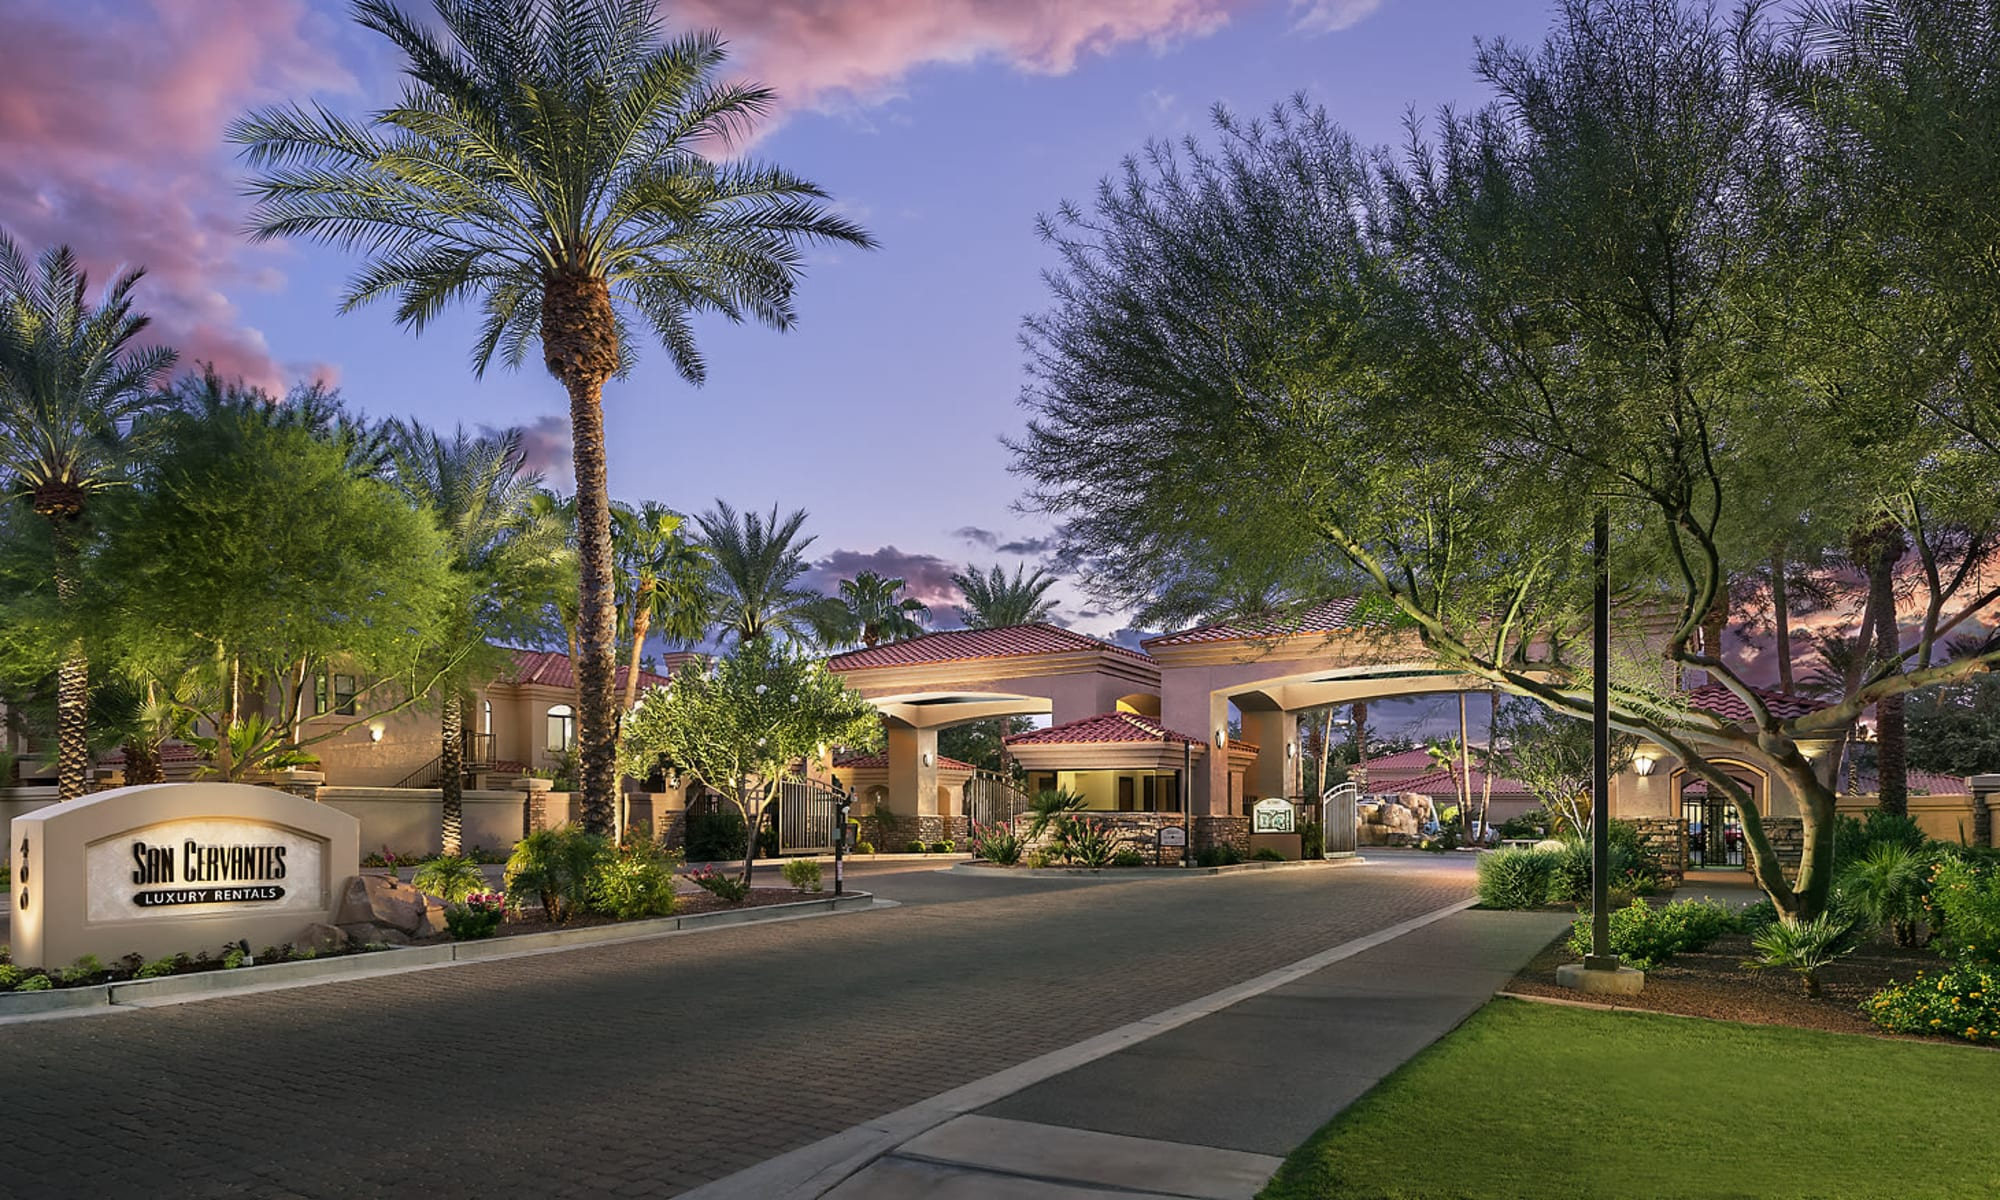 Apartments at San Cervantes in Chandler, Arizona